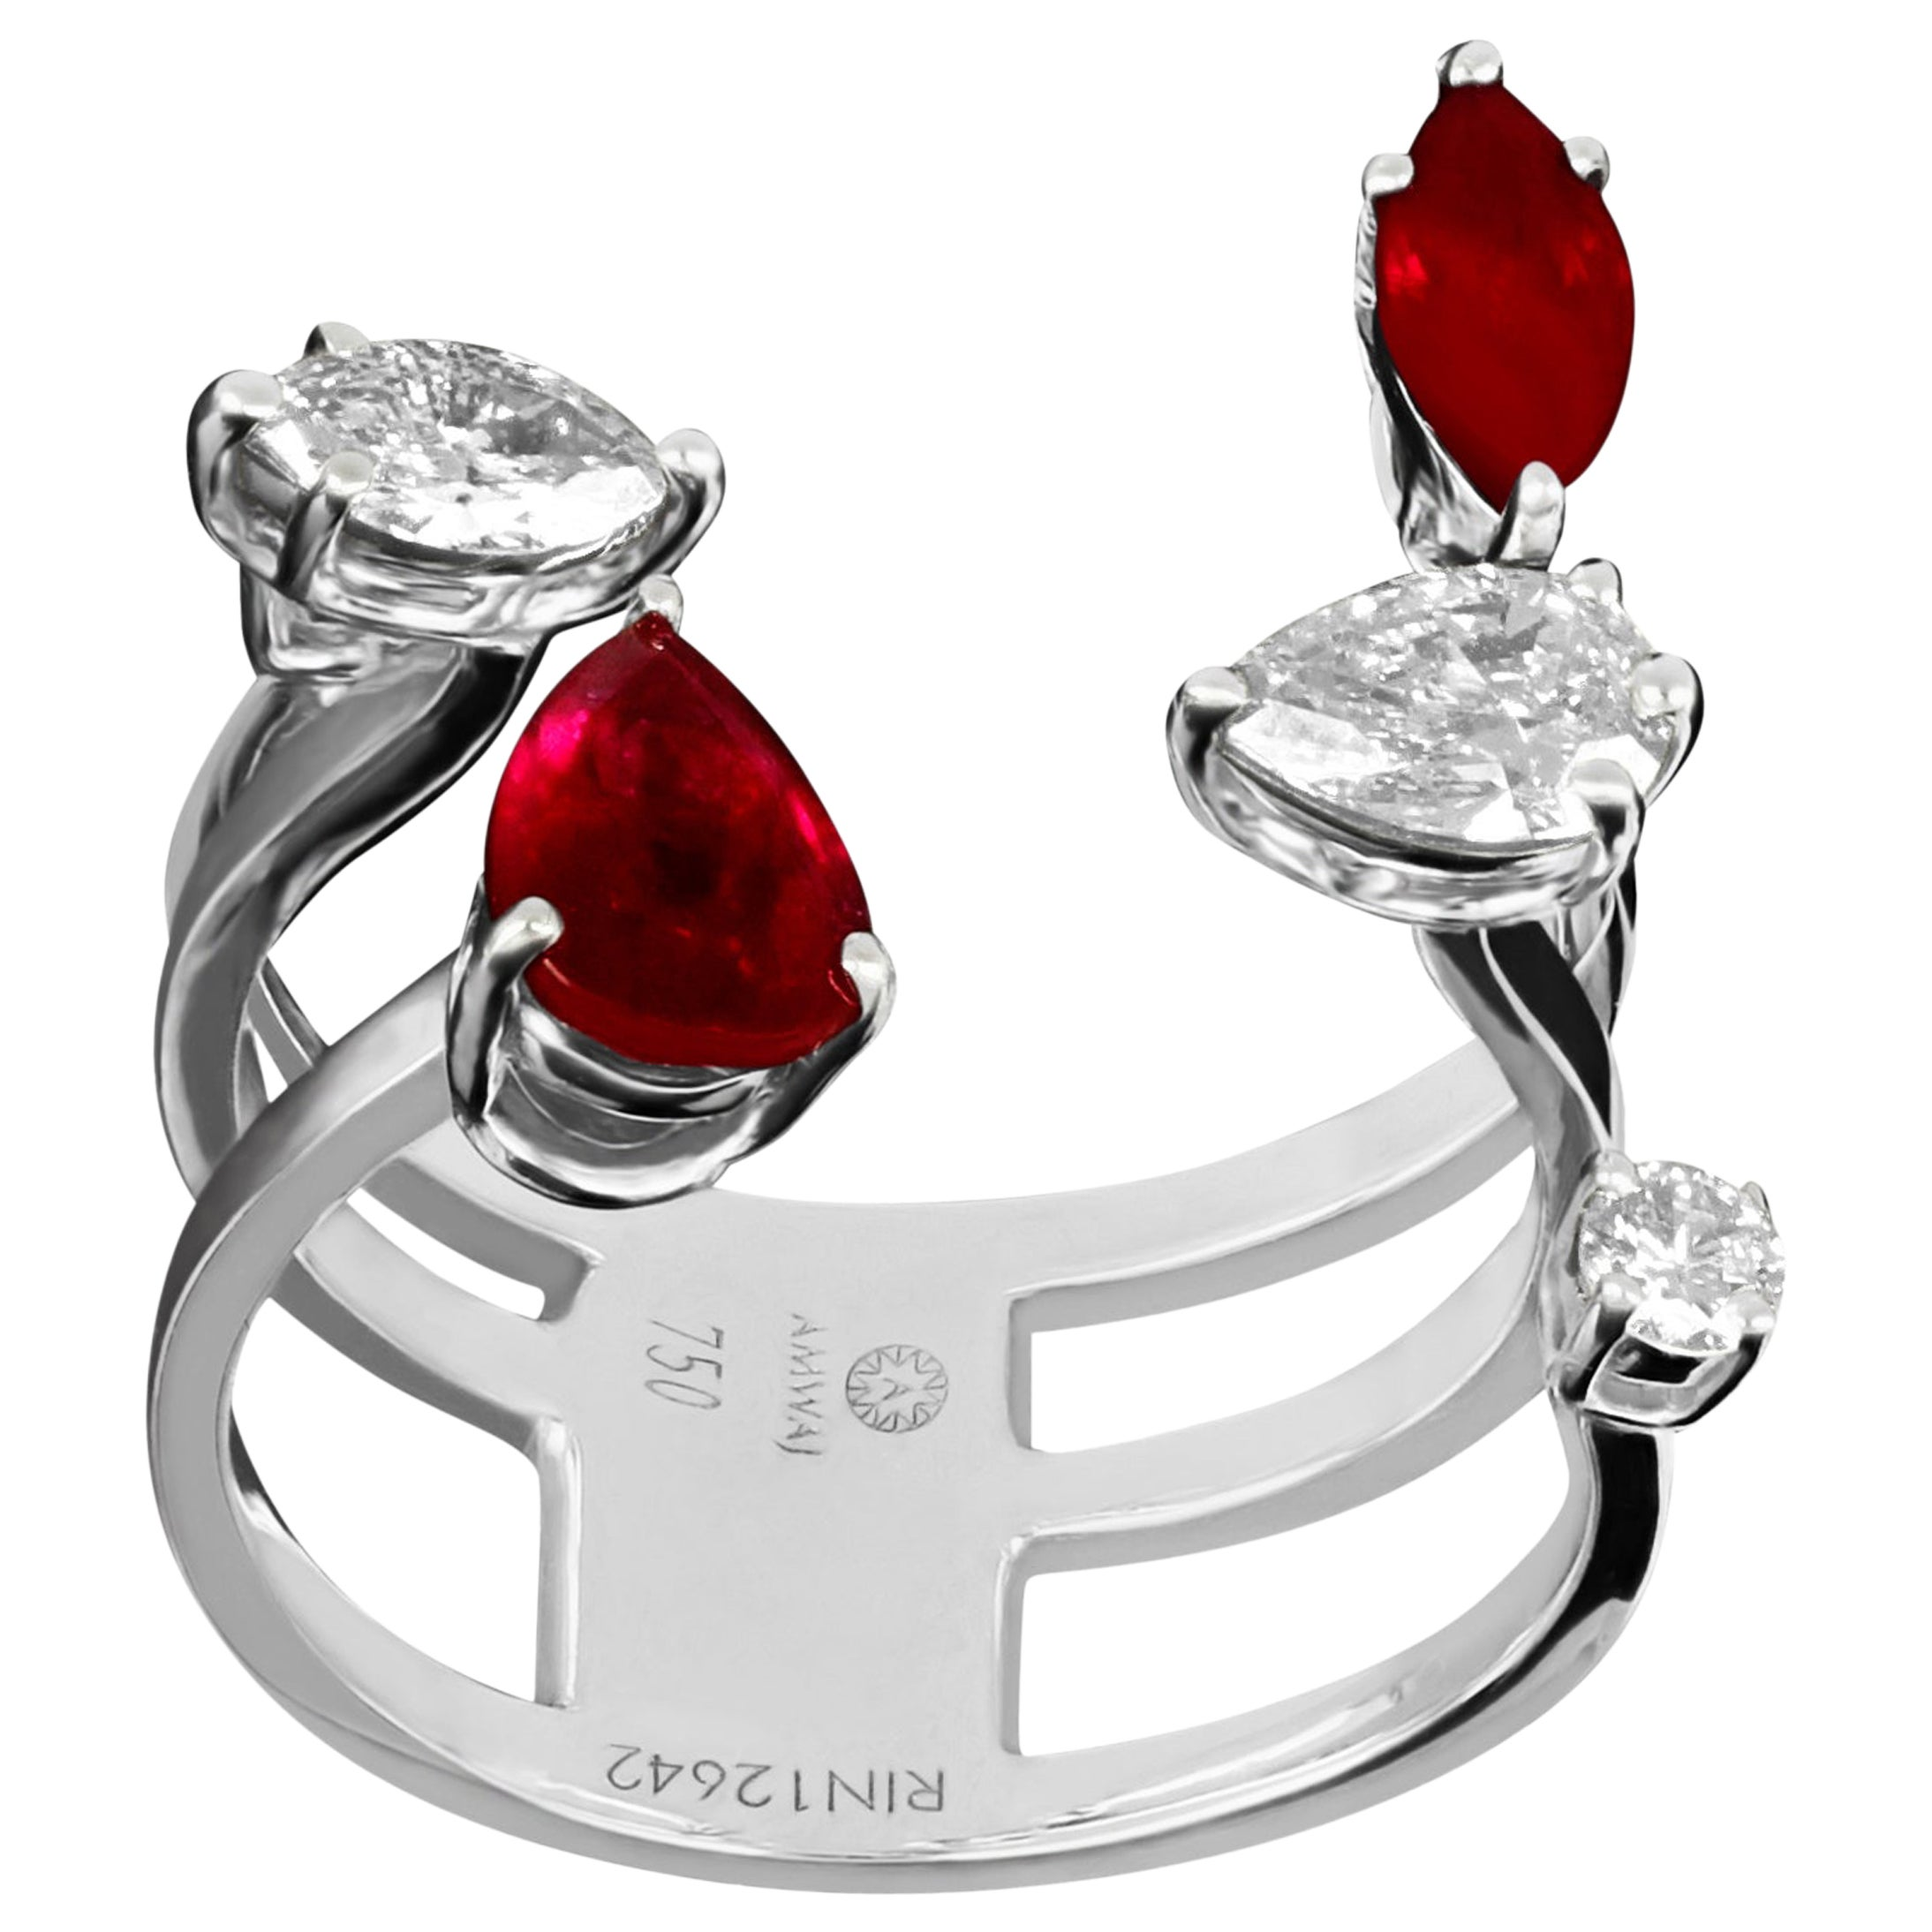 Amwaj Jewellery 18 Karat White Gold Ring with Ruby and Multi-Cut Diamond